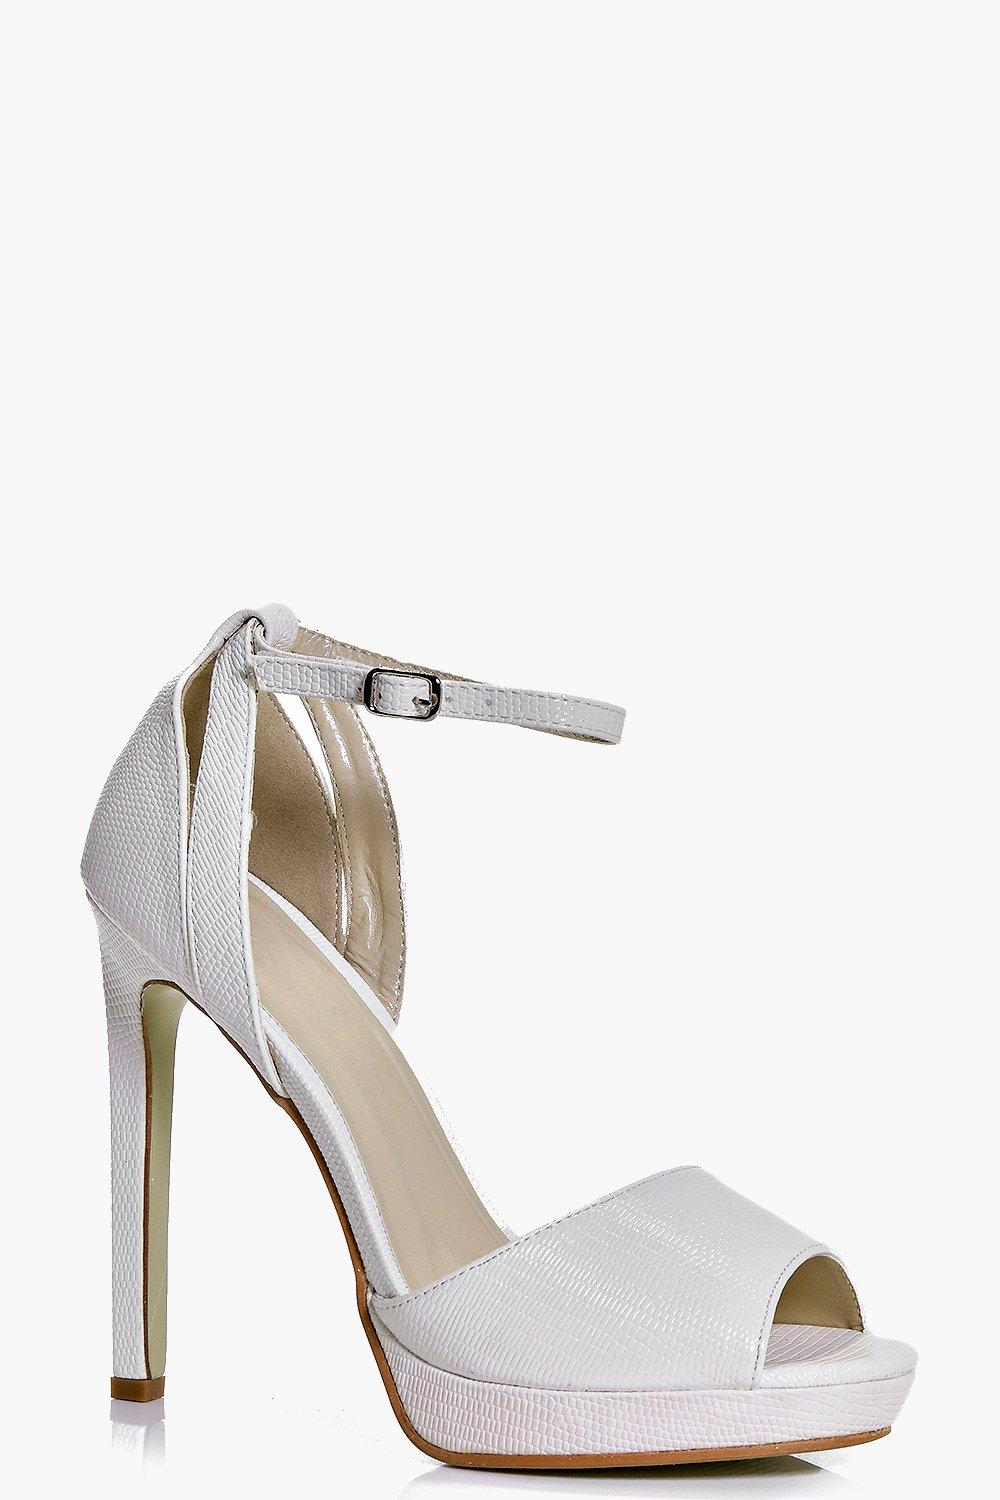 Zoe Lizard Effect Peeptoe Two Part